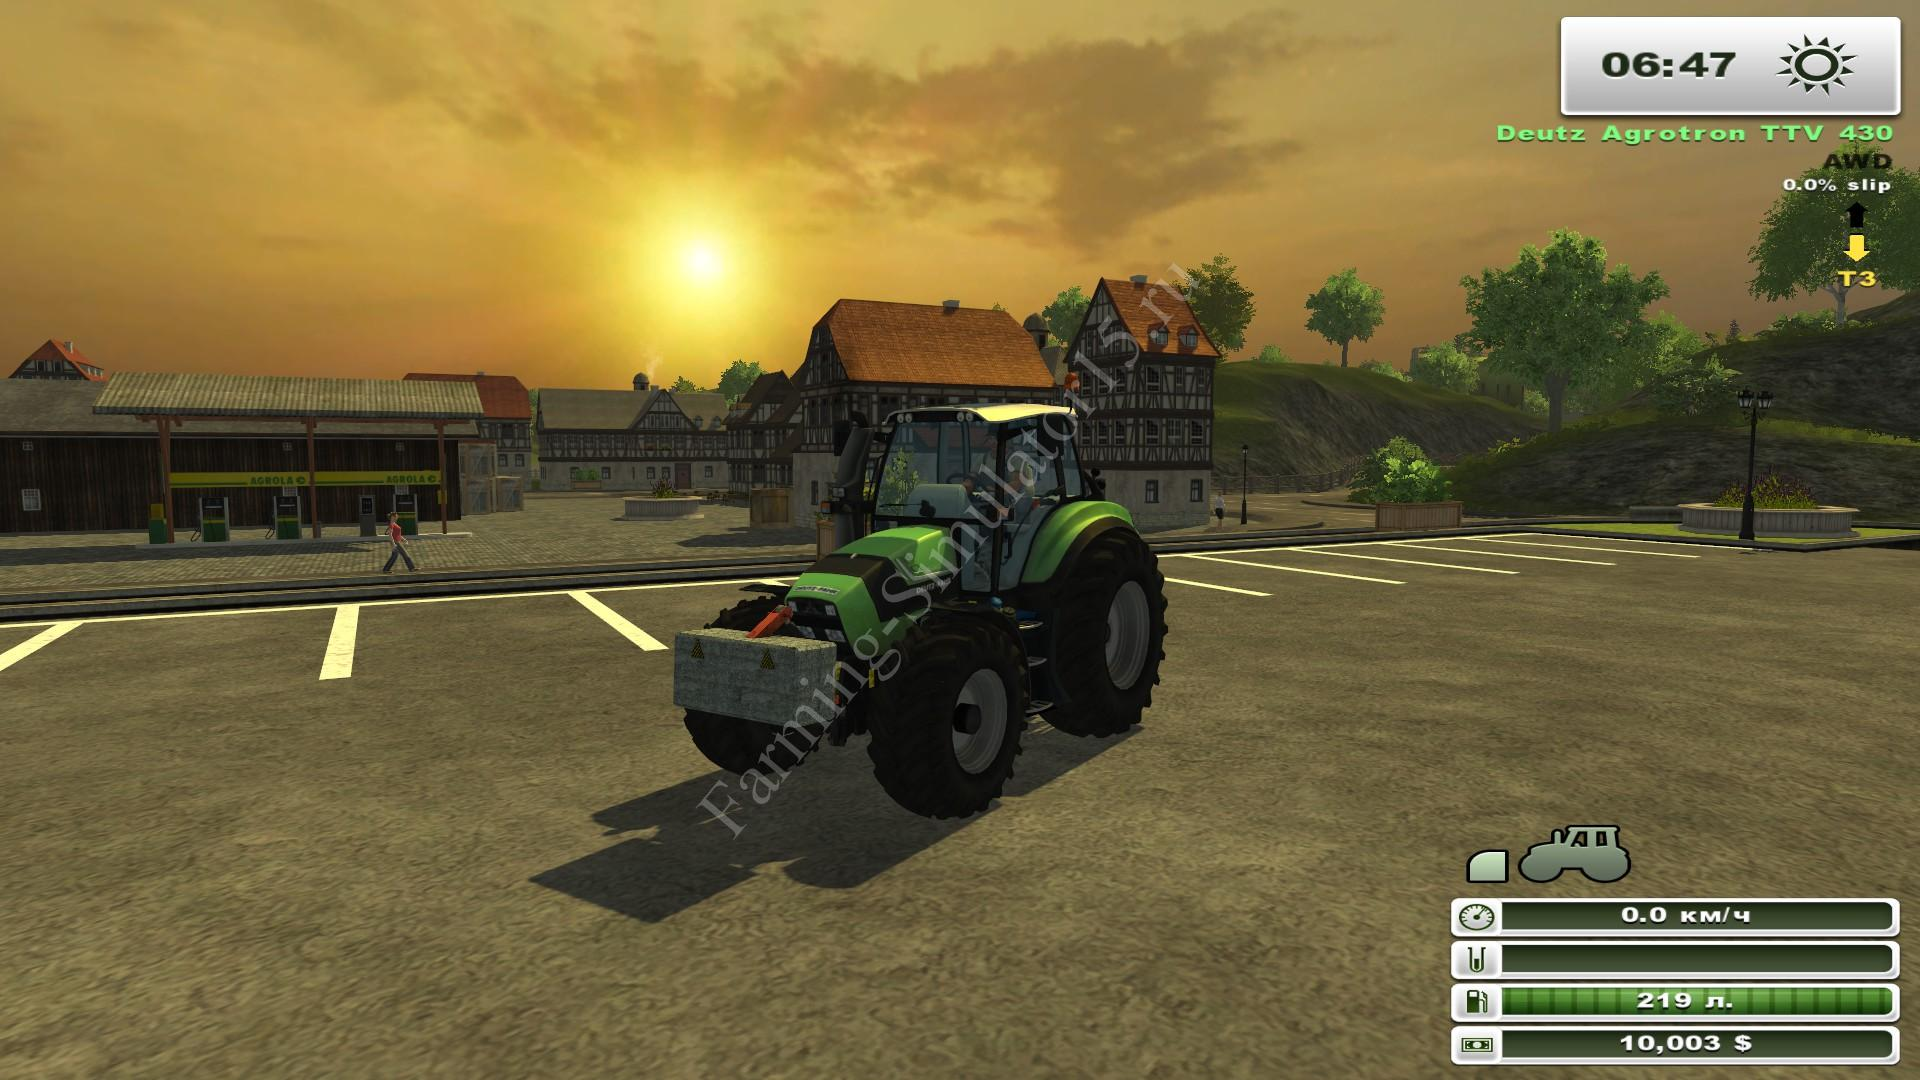 Мод противовеса DIY Weight 500 KG v 1.0 Farming Simulator 2013, Farming Simulator 13